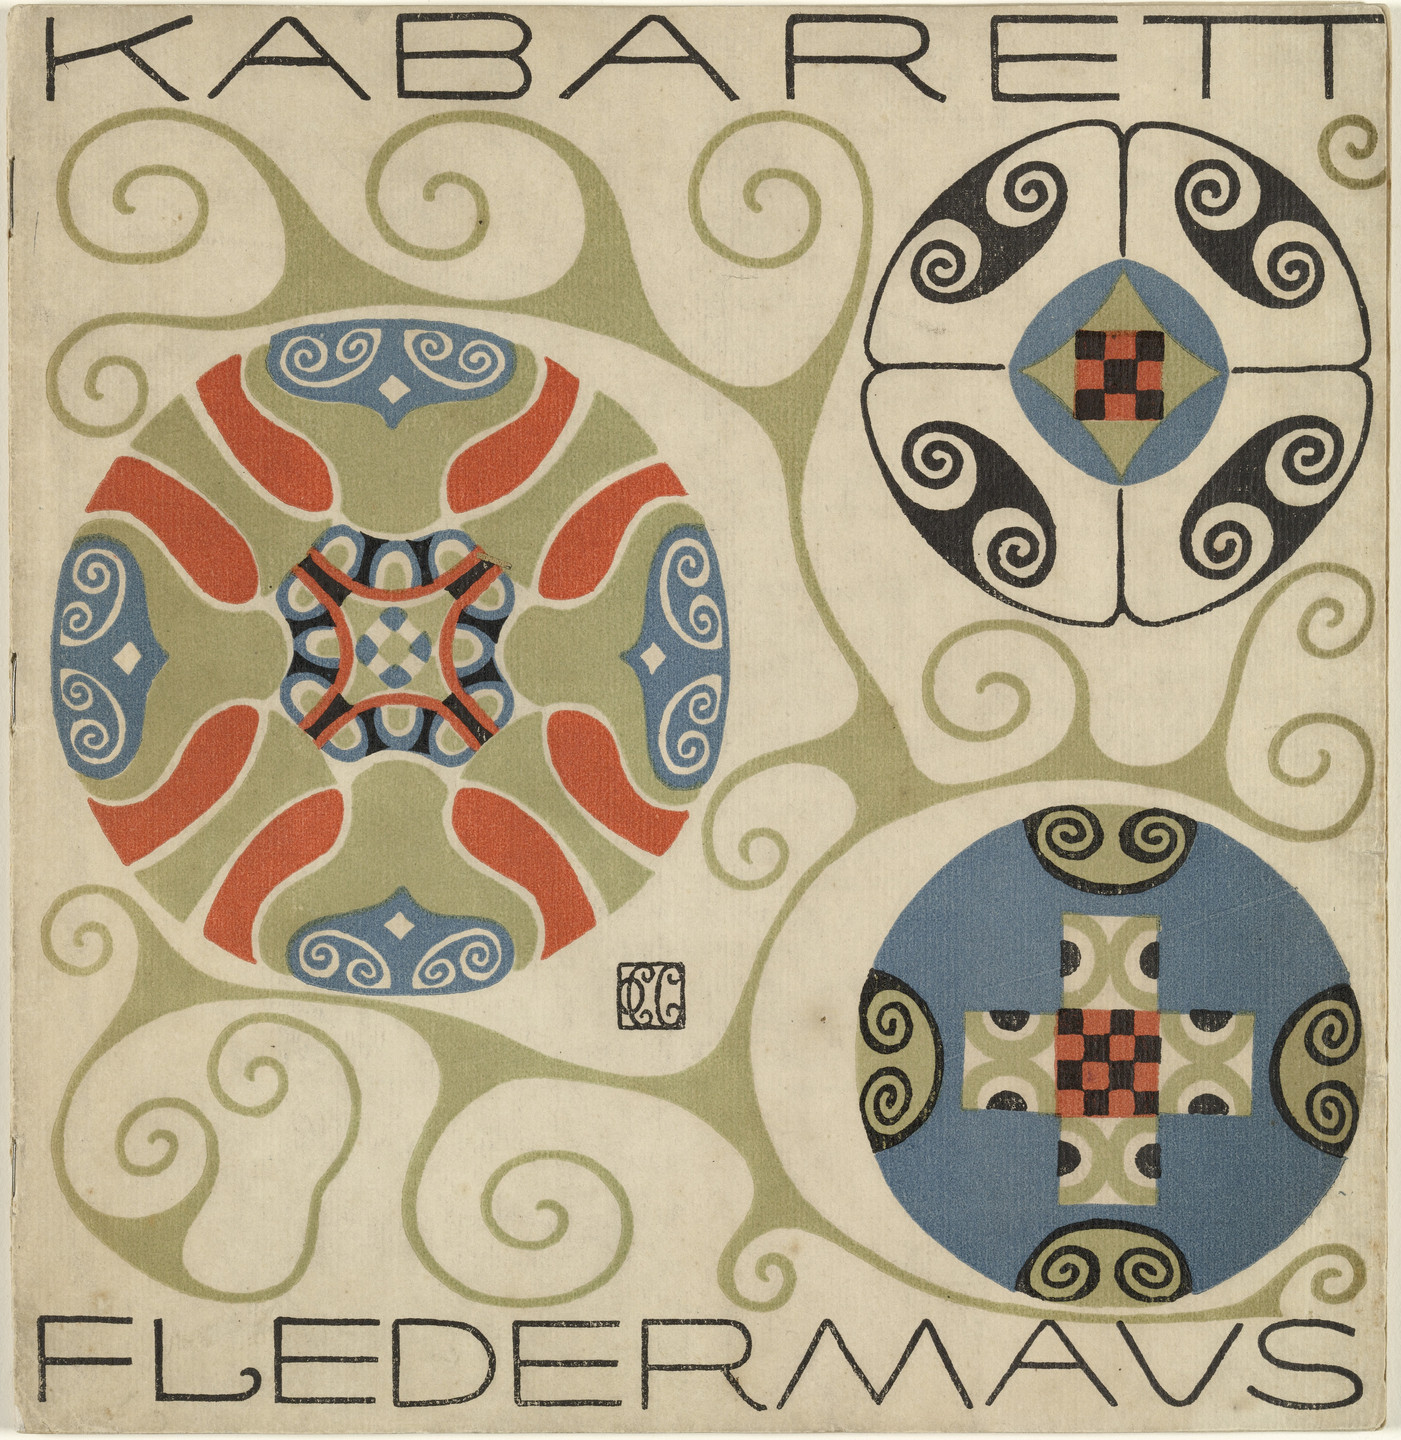 Carl Otto Czeschka. Front cover from the First Theater Program of Kabarett Fledermaus (Cabaret Fledermaus). 1907